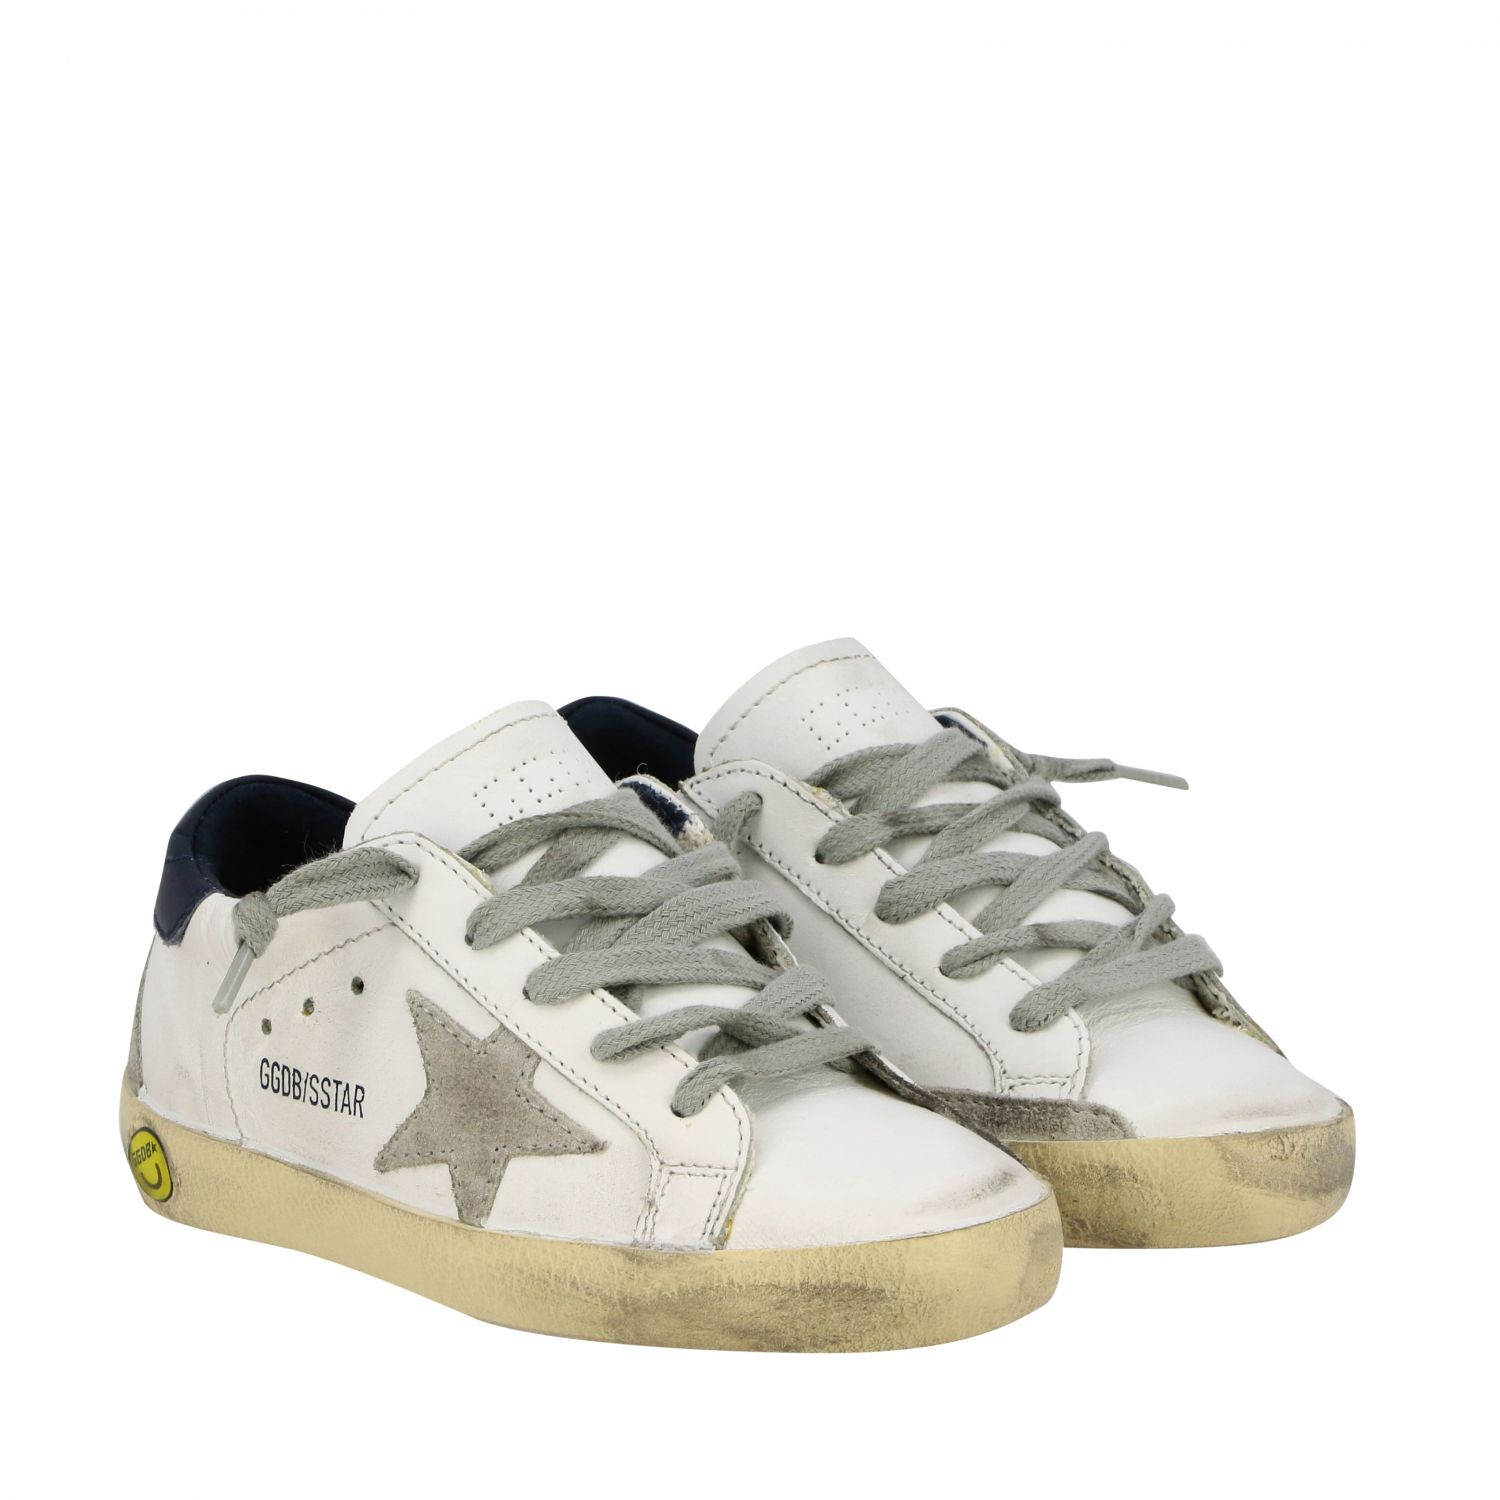 Superstar Golden Goose sneakers in leather and suede with star white 2